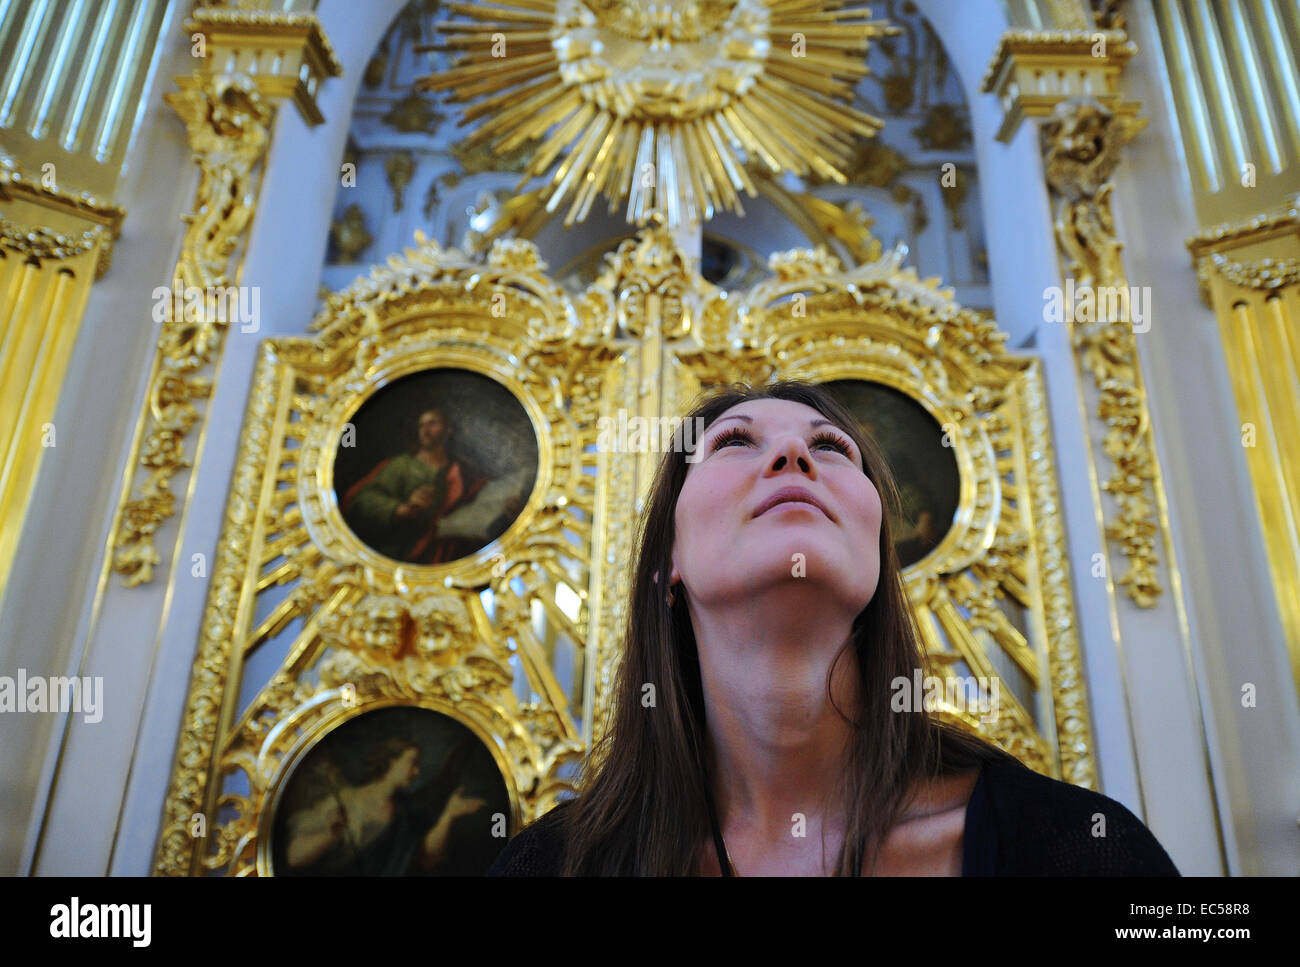 St. Petersburg, Russia. 9th Dec, 2014. A visitor at the opening of the renovated Grand Church of the Winter Palace. - Stock Image